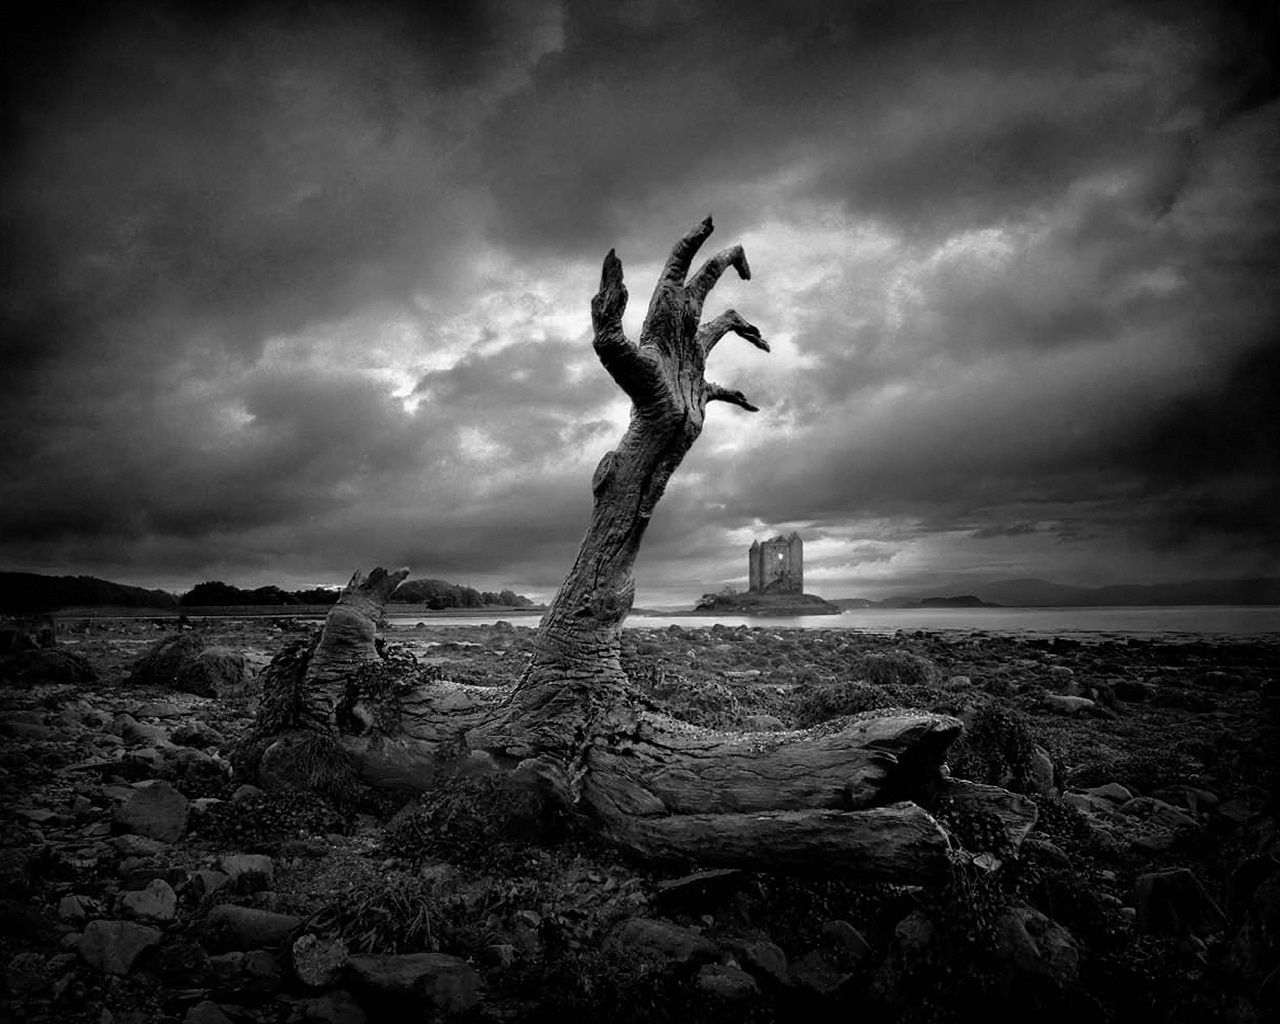 Horror Art : Remains of a Tree OR Rise of the Undead... you decide! #zombieapocalypse  ?